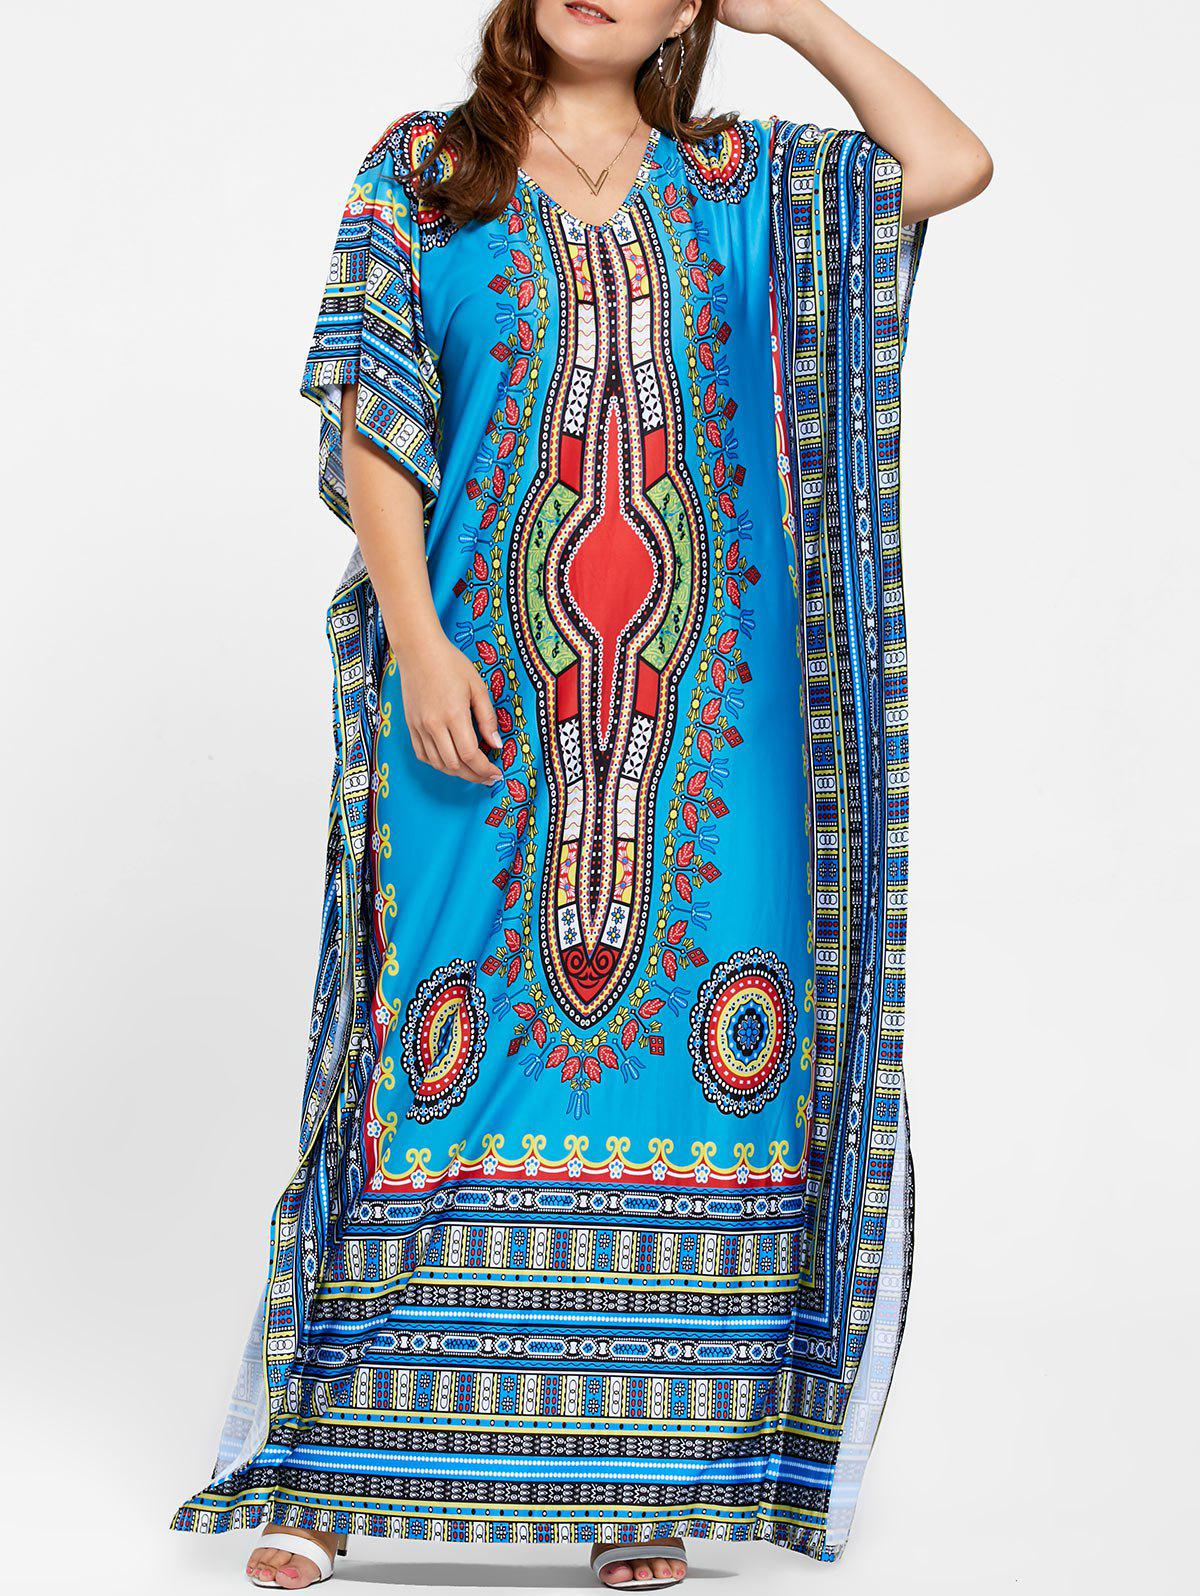 Tribal V Neck Plus Size Long Kaftan DressWOMEN<br><br>Size: ONE SIZE; Color: BLUE; Style: Bohemian; Material: Polyester; Silhouette: Straight; Dresses Length: Floor-Length; Neckline: V-Neck; Sleeve Type: Butterfly Sleeve; Sleeve Length: Short Sleeves; Pattern Type: Print; With Belt: No; Season: Summer; Weight: 0.5200kg; Package Contents: 1 x Dress;